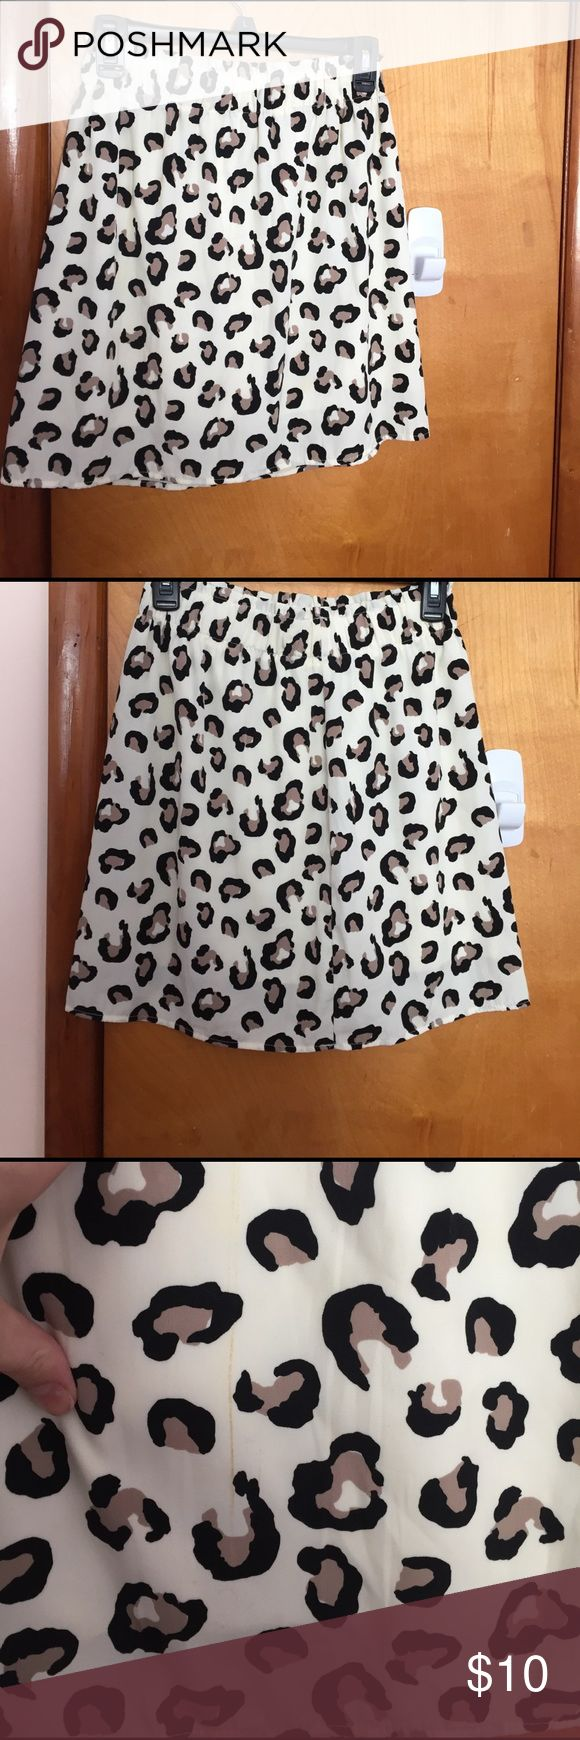 Cheetah skirt Bought this skirt last fall but didn't end up wearing it. Has small discoloration between the pleat on the front but not noticeable at all. It was on clearance when I bought it because of the discoloration. See pics :) Francesca's Collections Skirts Mini